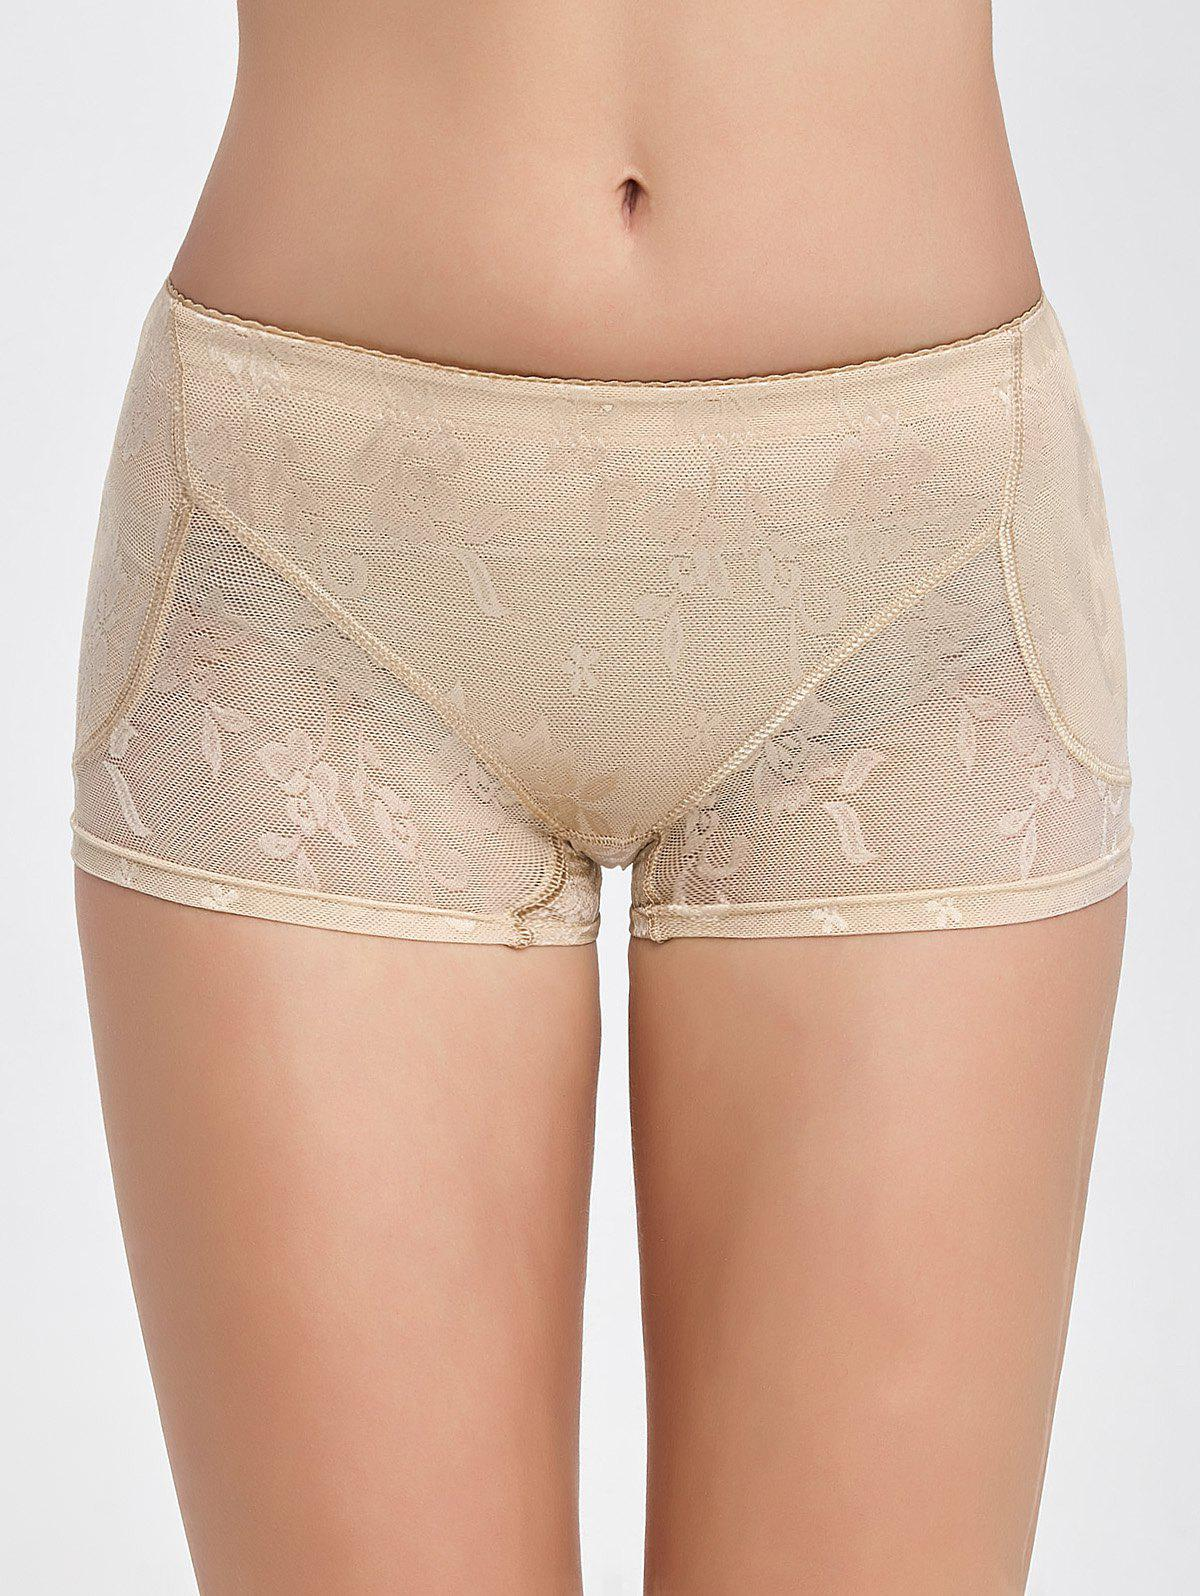 Flower See-Through Padded BoyshortsWomen<br><br><br>Size: M<br>Color: COMPLEXION